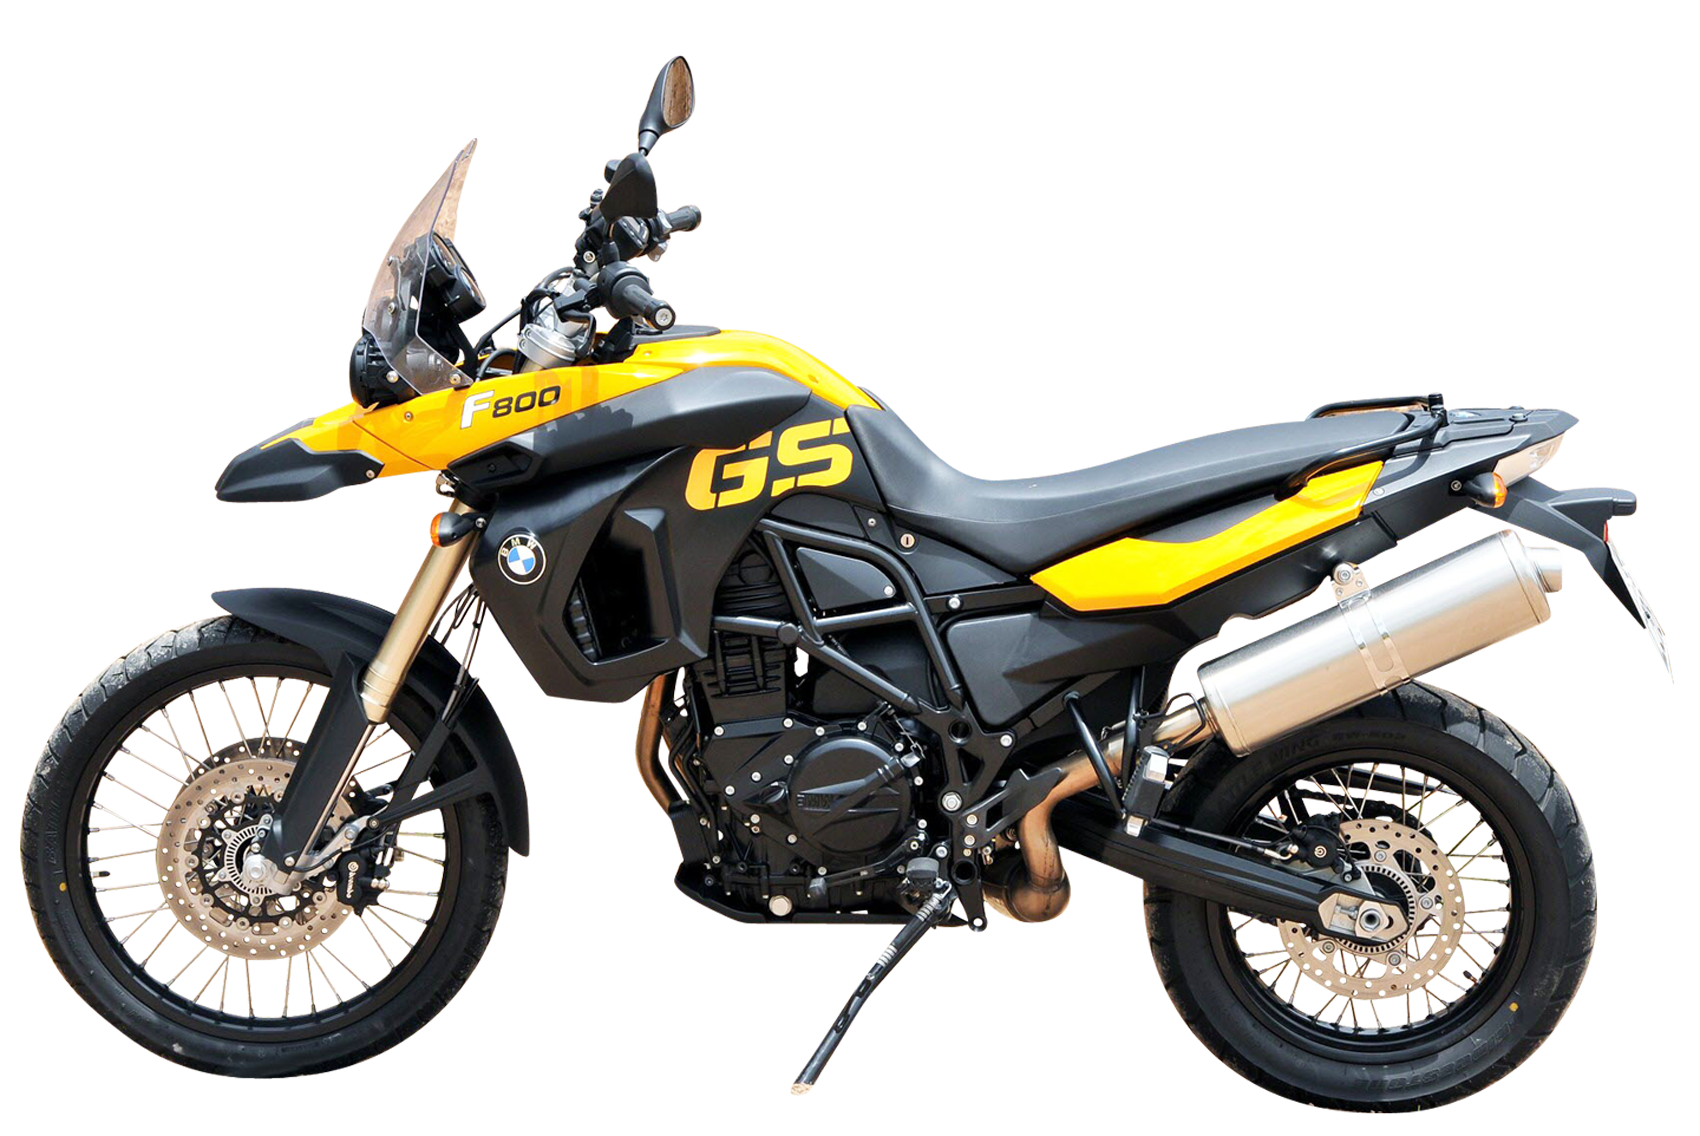 BMW F800GS PNG Image